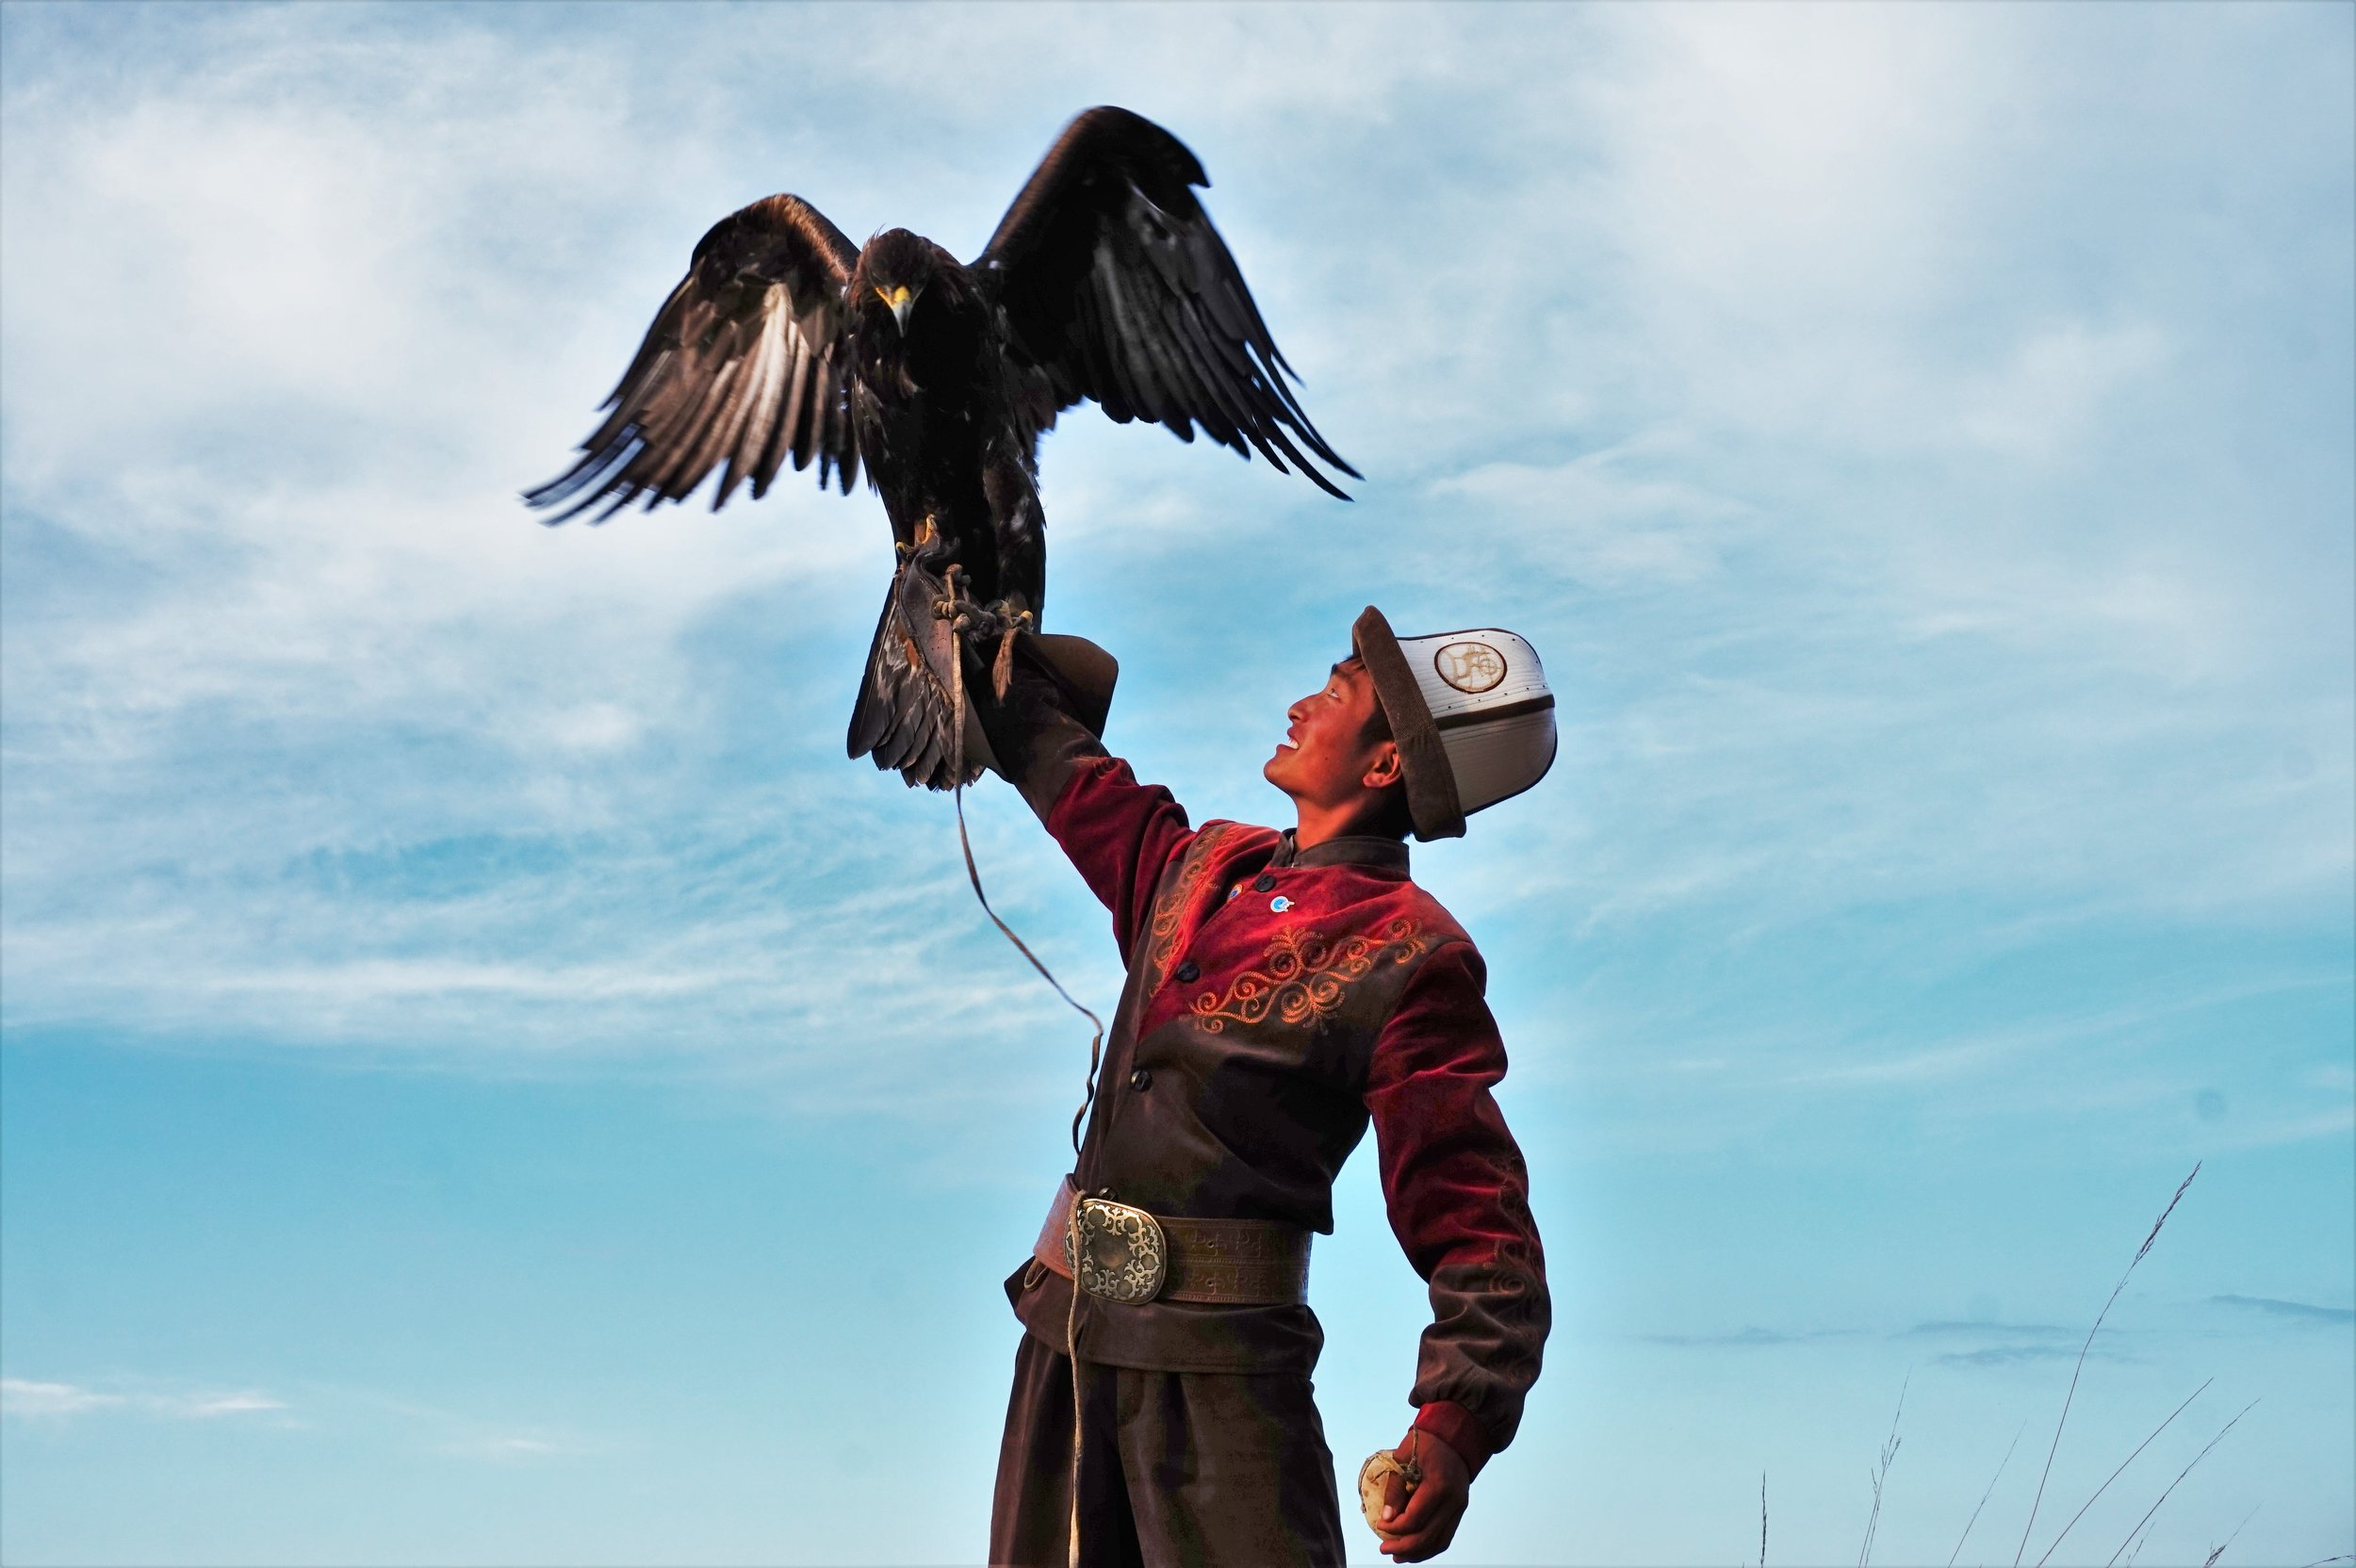 to watch some Salbaruun live is an amazing spectacle and should be on your things to do in Kyrgyzstan. Awesome things to do in Kyrgyzstan!